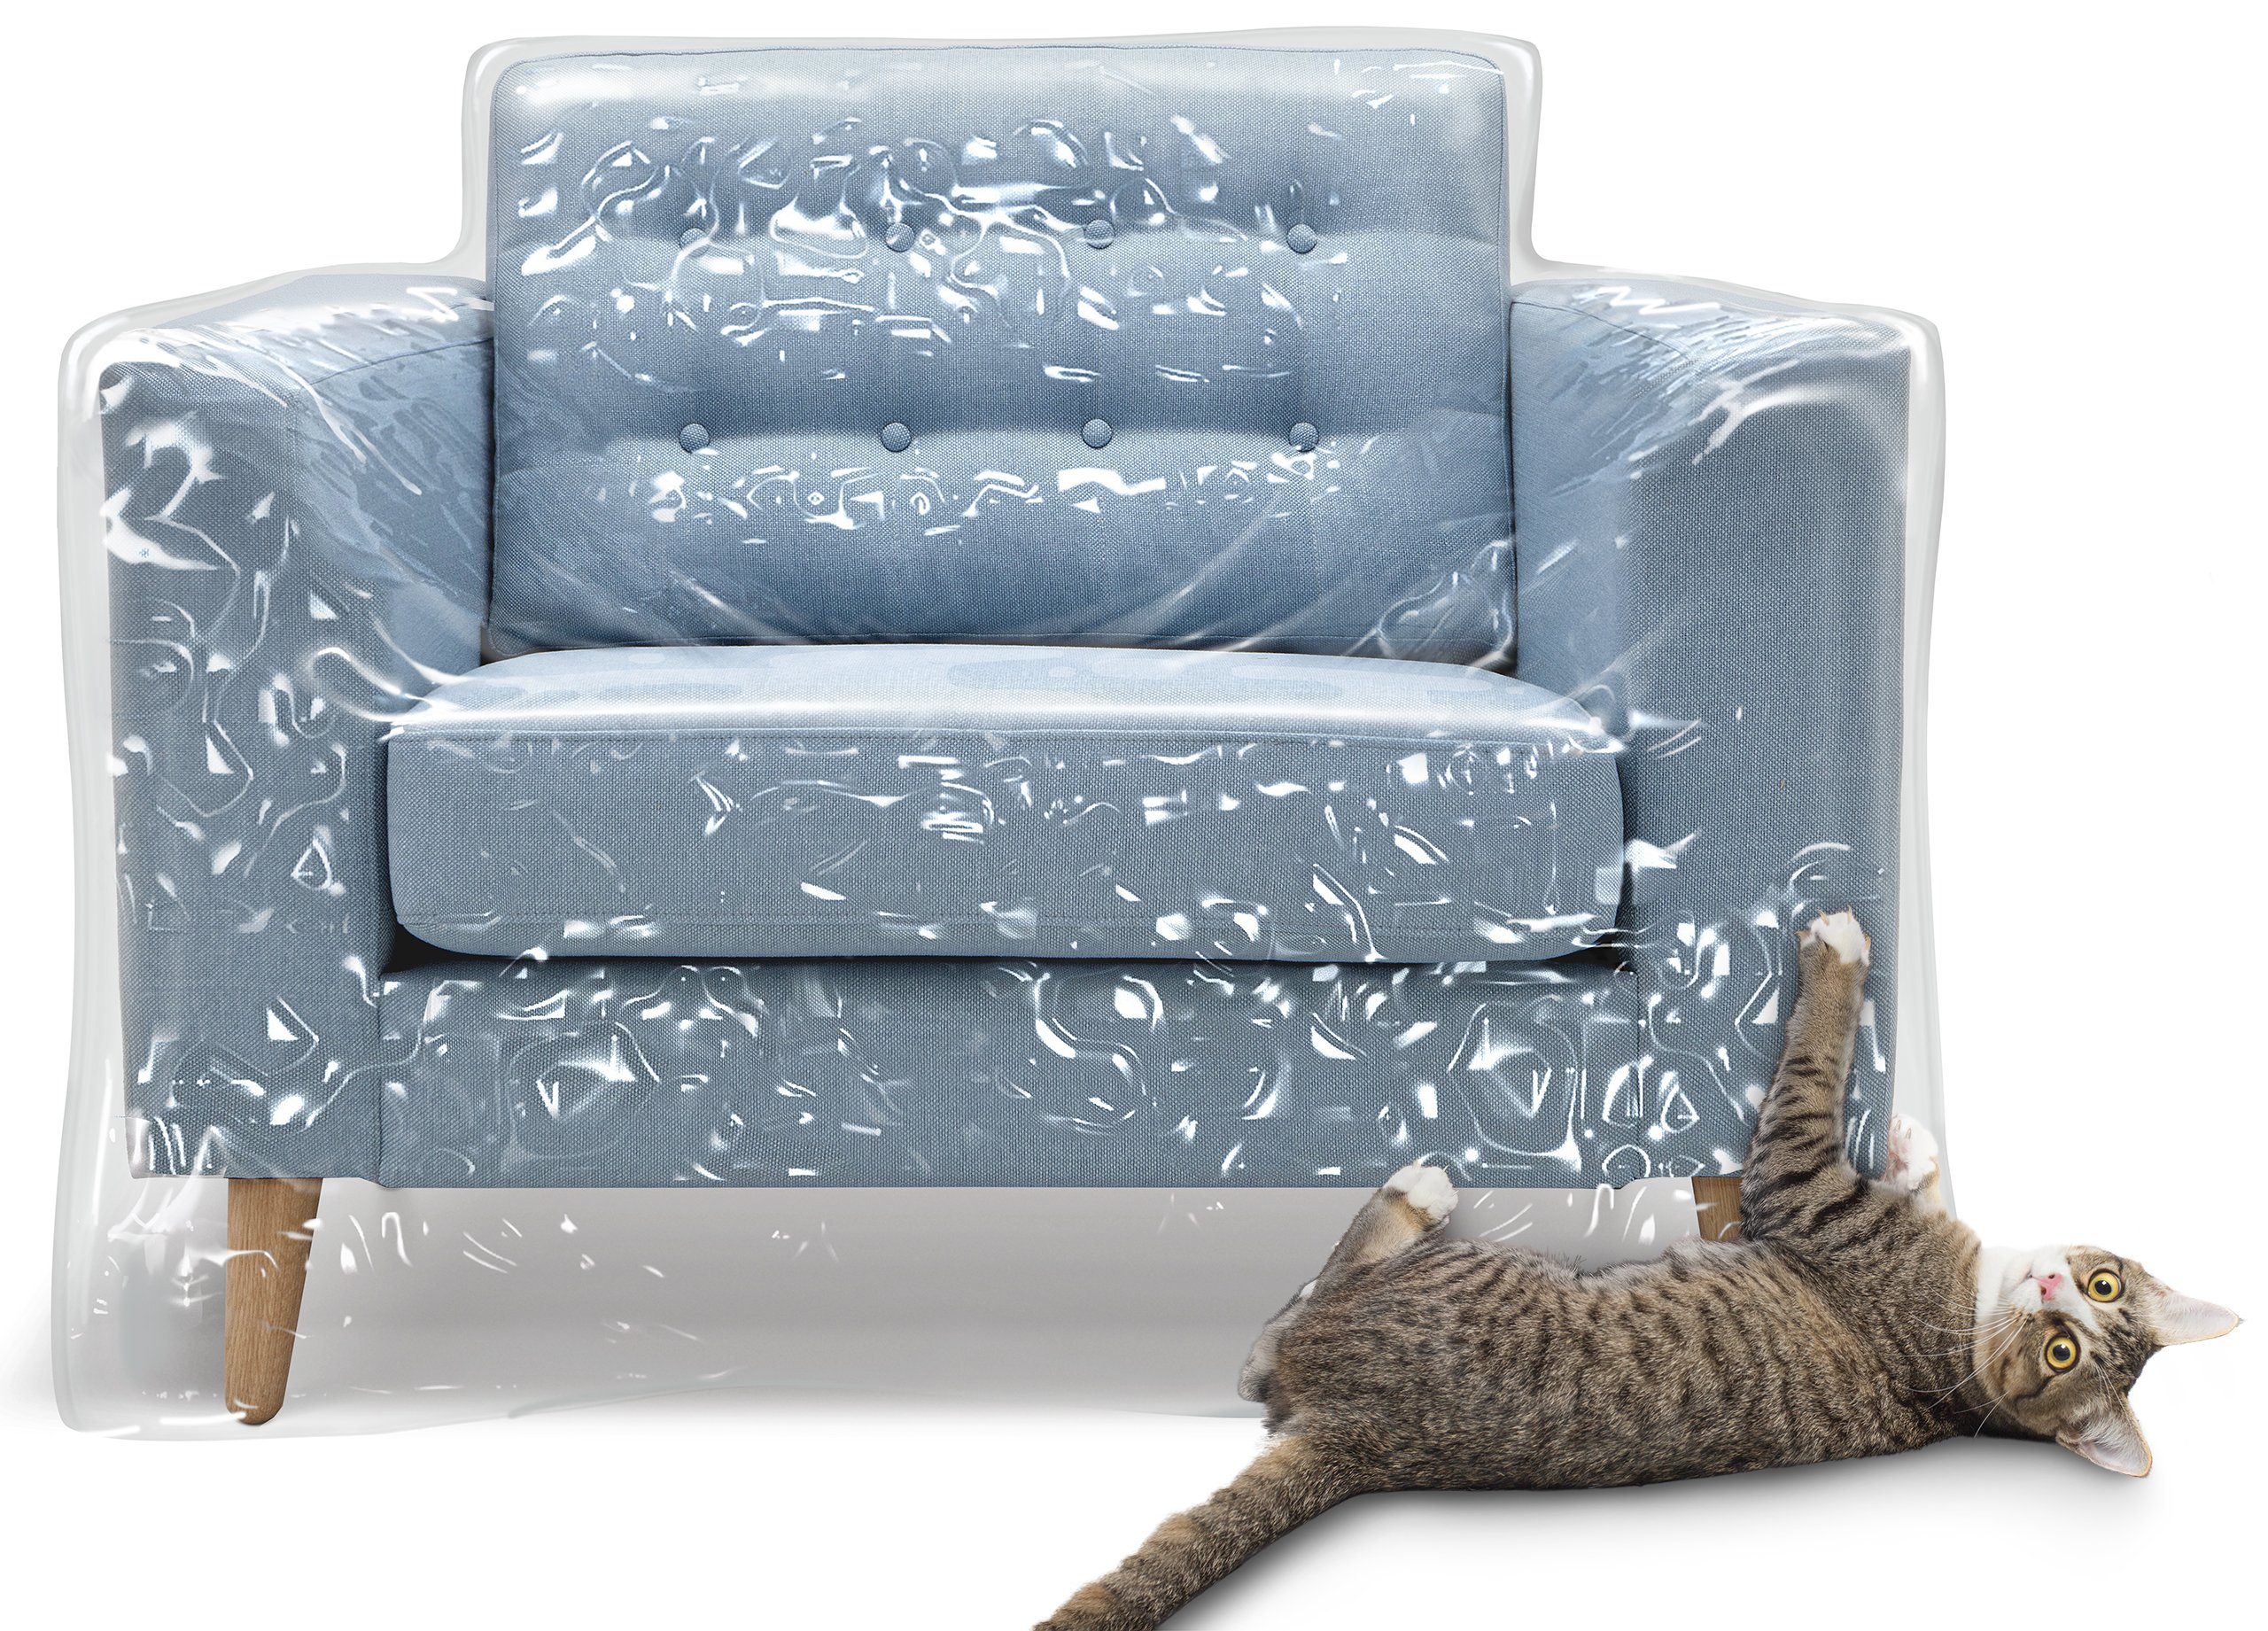 Plastic Recliner Armchair Cover For Pets | Cat Scratching Protector Clawing Deterrent | Heavy Duty Thick Clear Vinyl Chair Slipcover | Waterproof Plastic Furniture Covers For Storage And Moving by Kitty Cat Protector